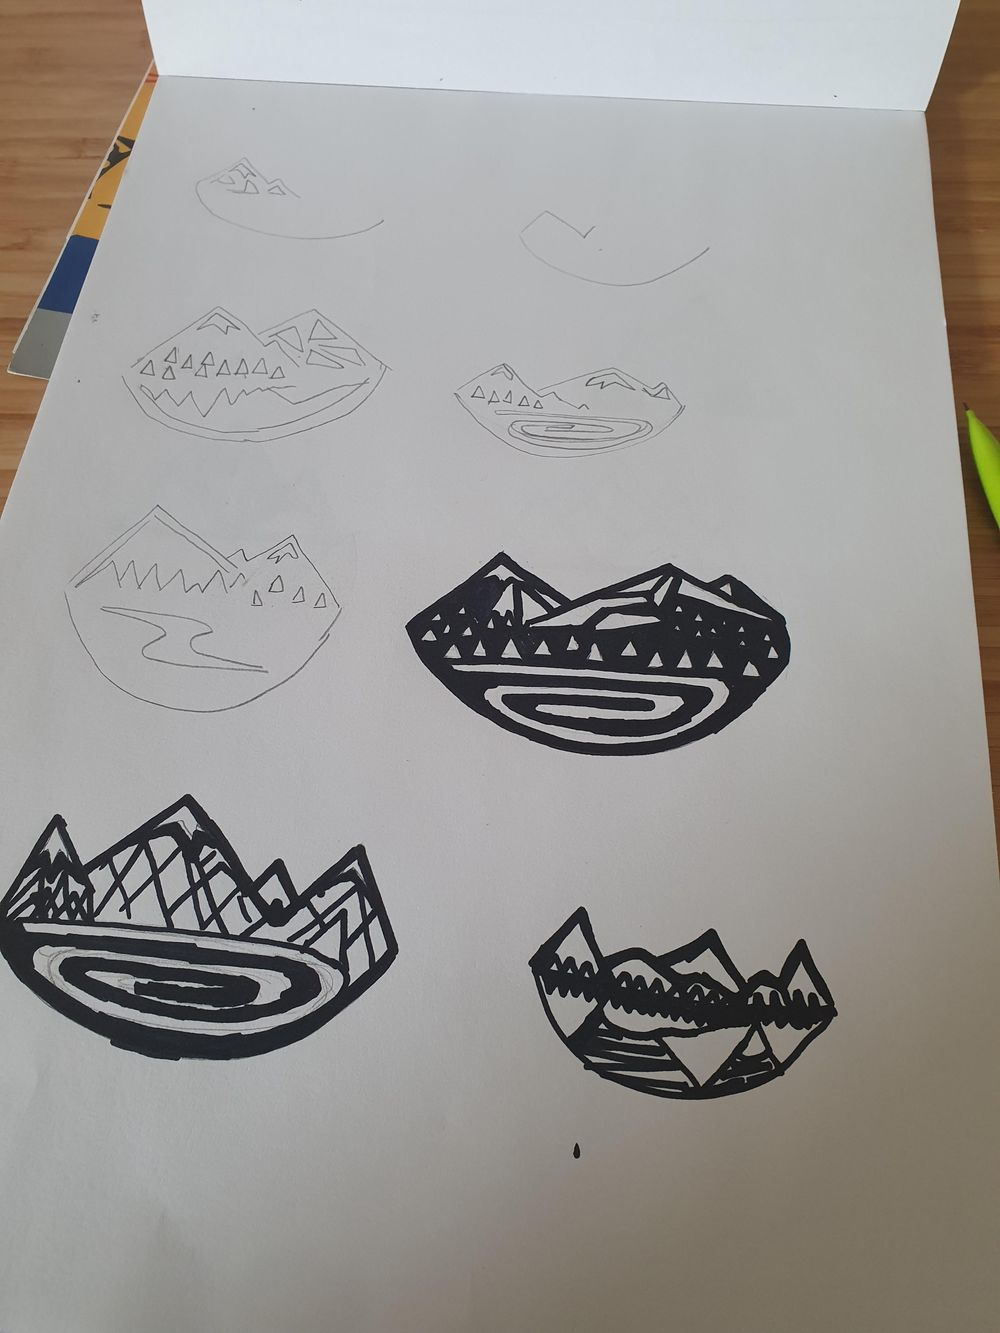 Mountain necklace design - image 2 - student project